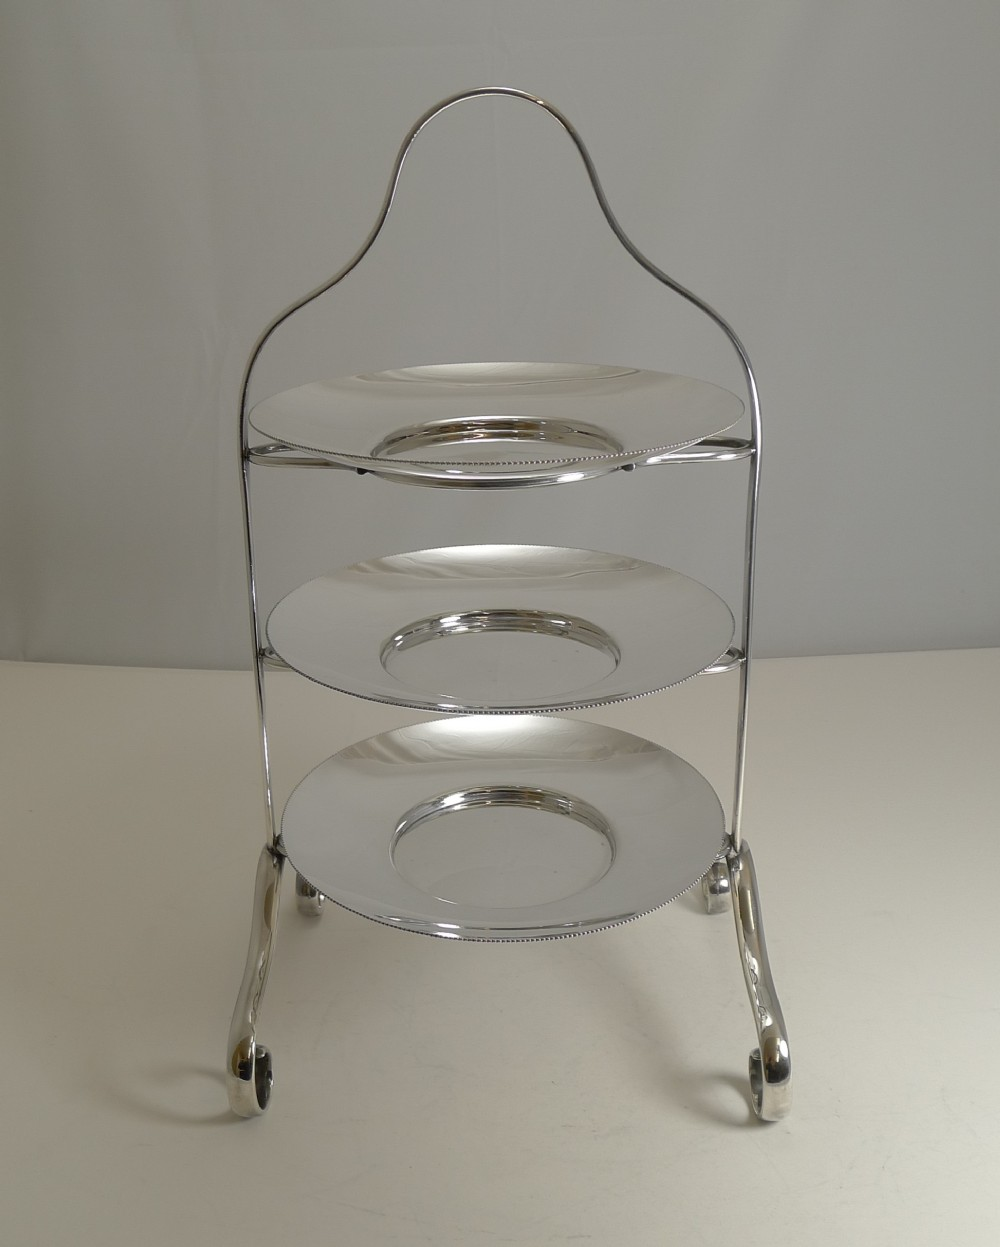 english art deco period silver plated cake stand by elkington 1929